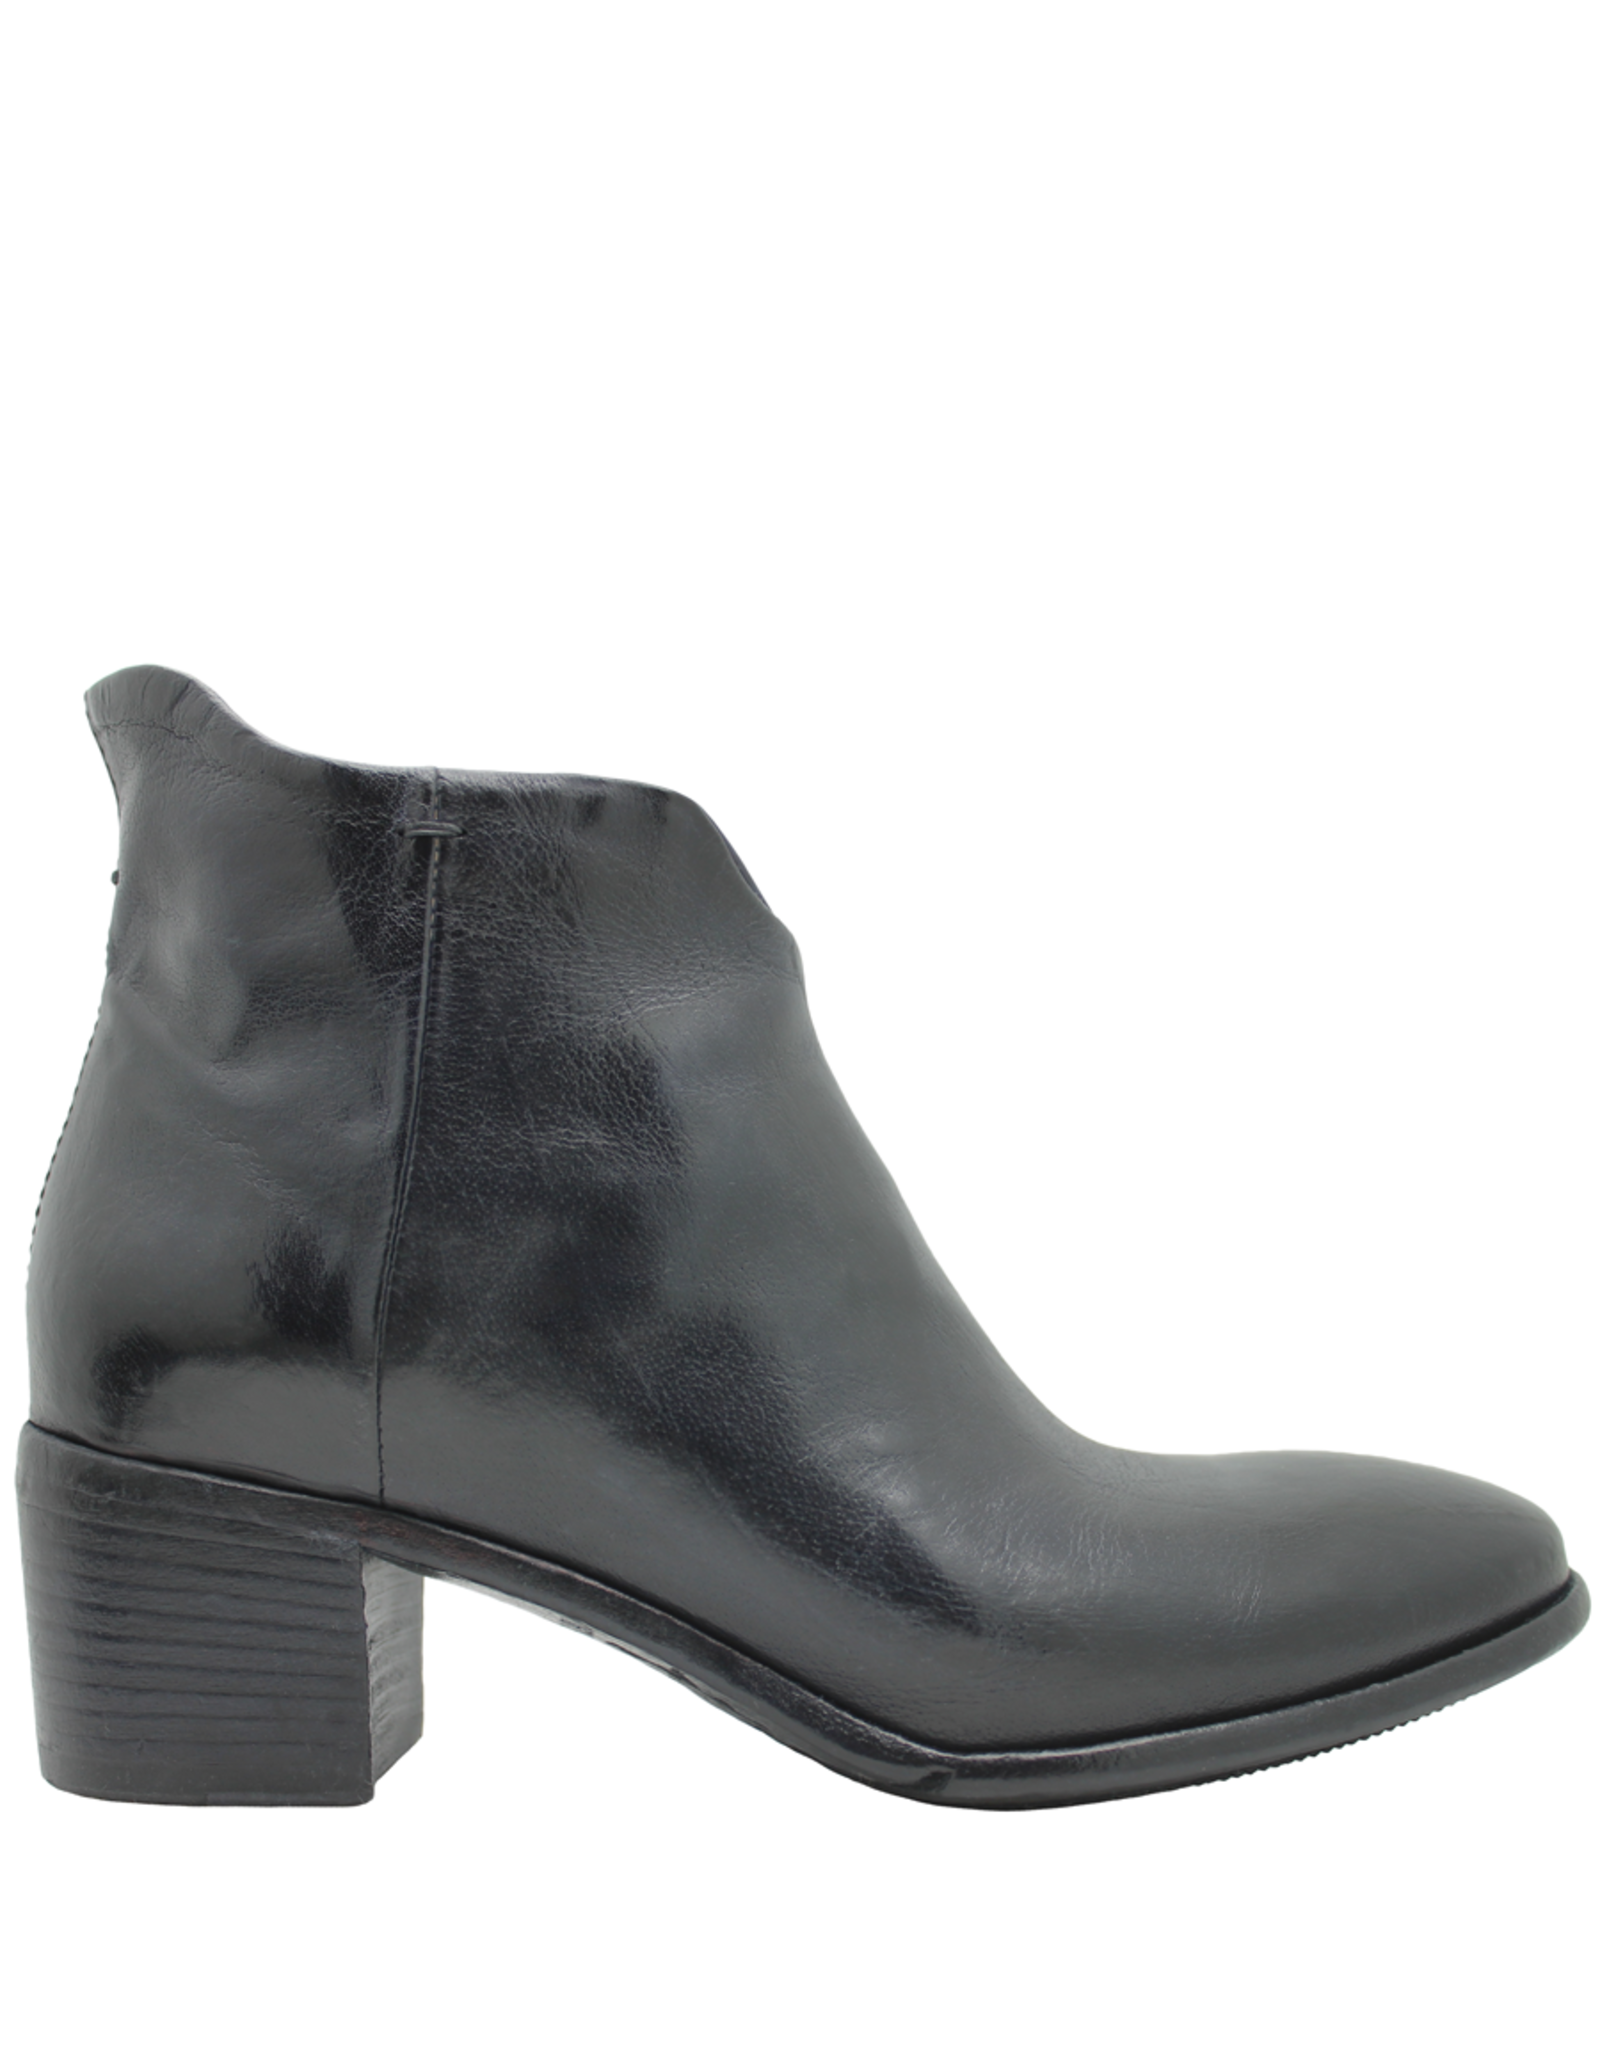 LeMargo LeMargo Navy Blue Ankle Boot 2286